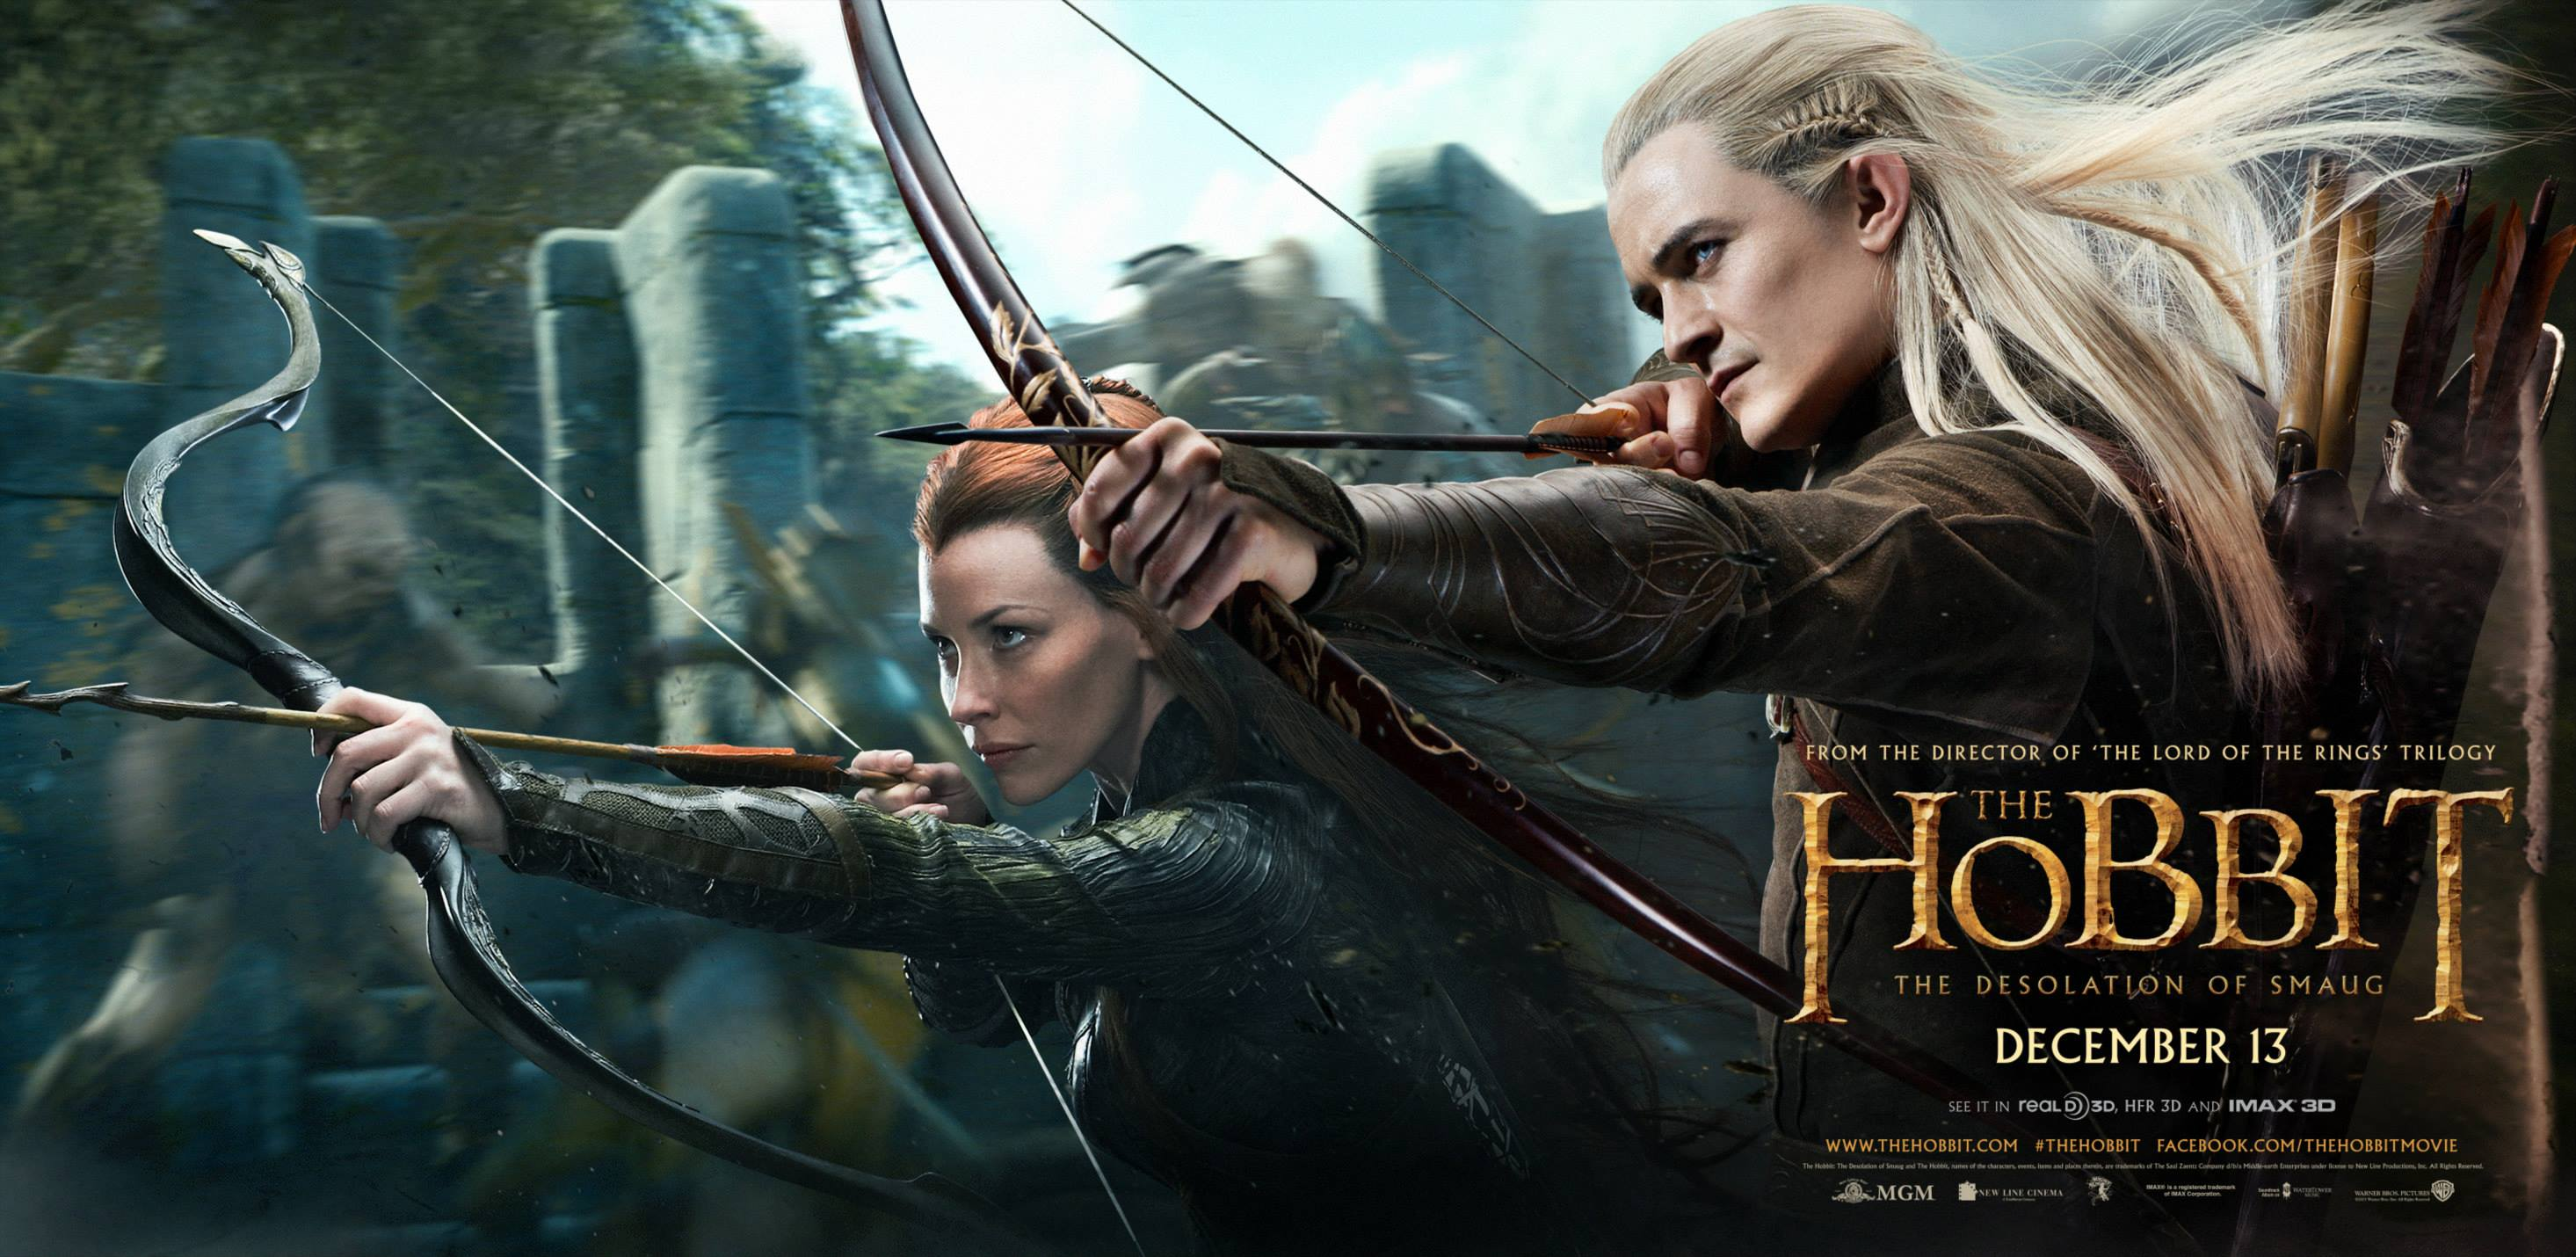 The Desolation of Smaug Legolas and Tauriel Movie Poster